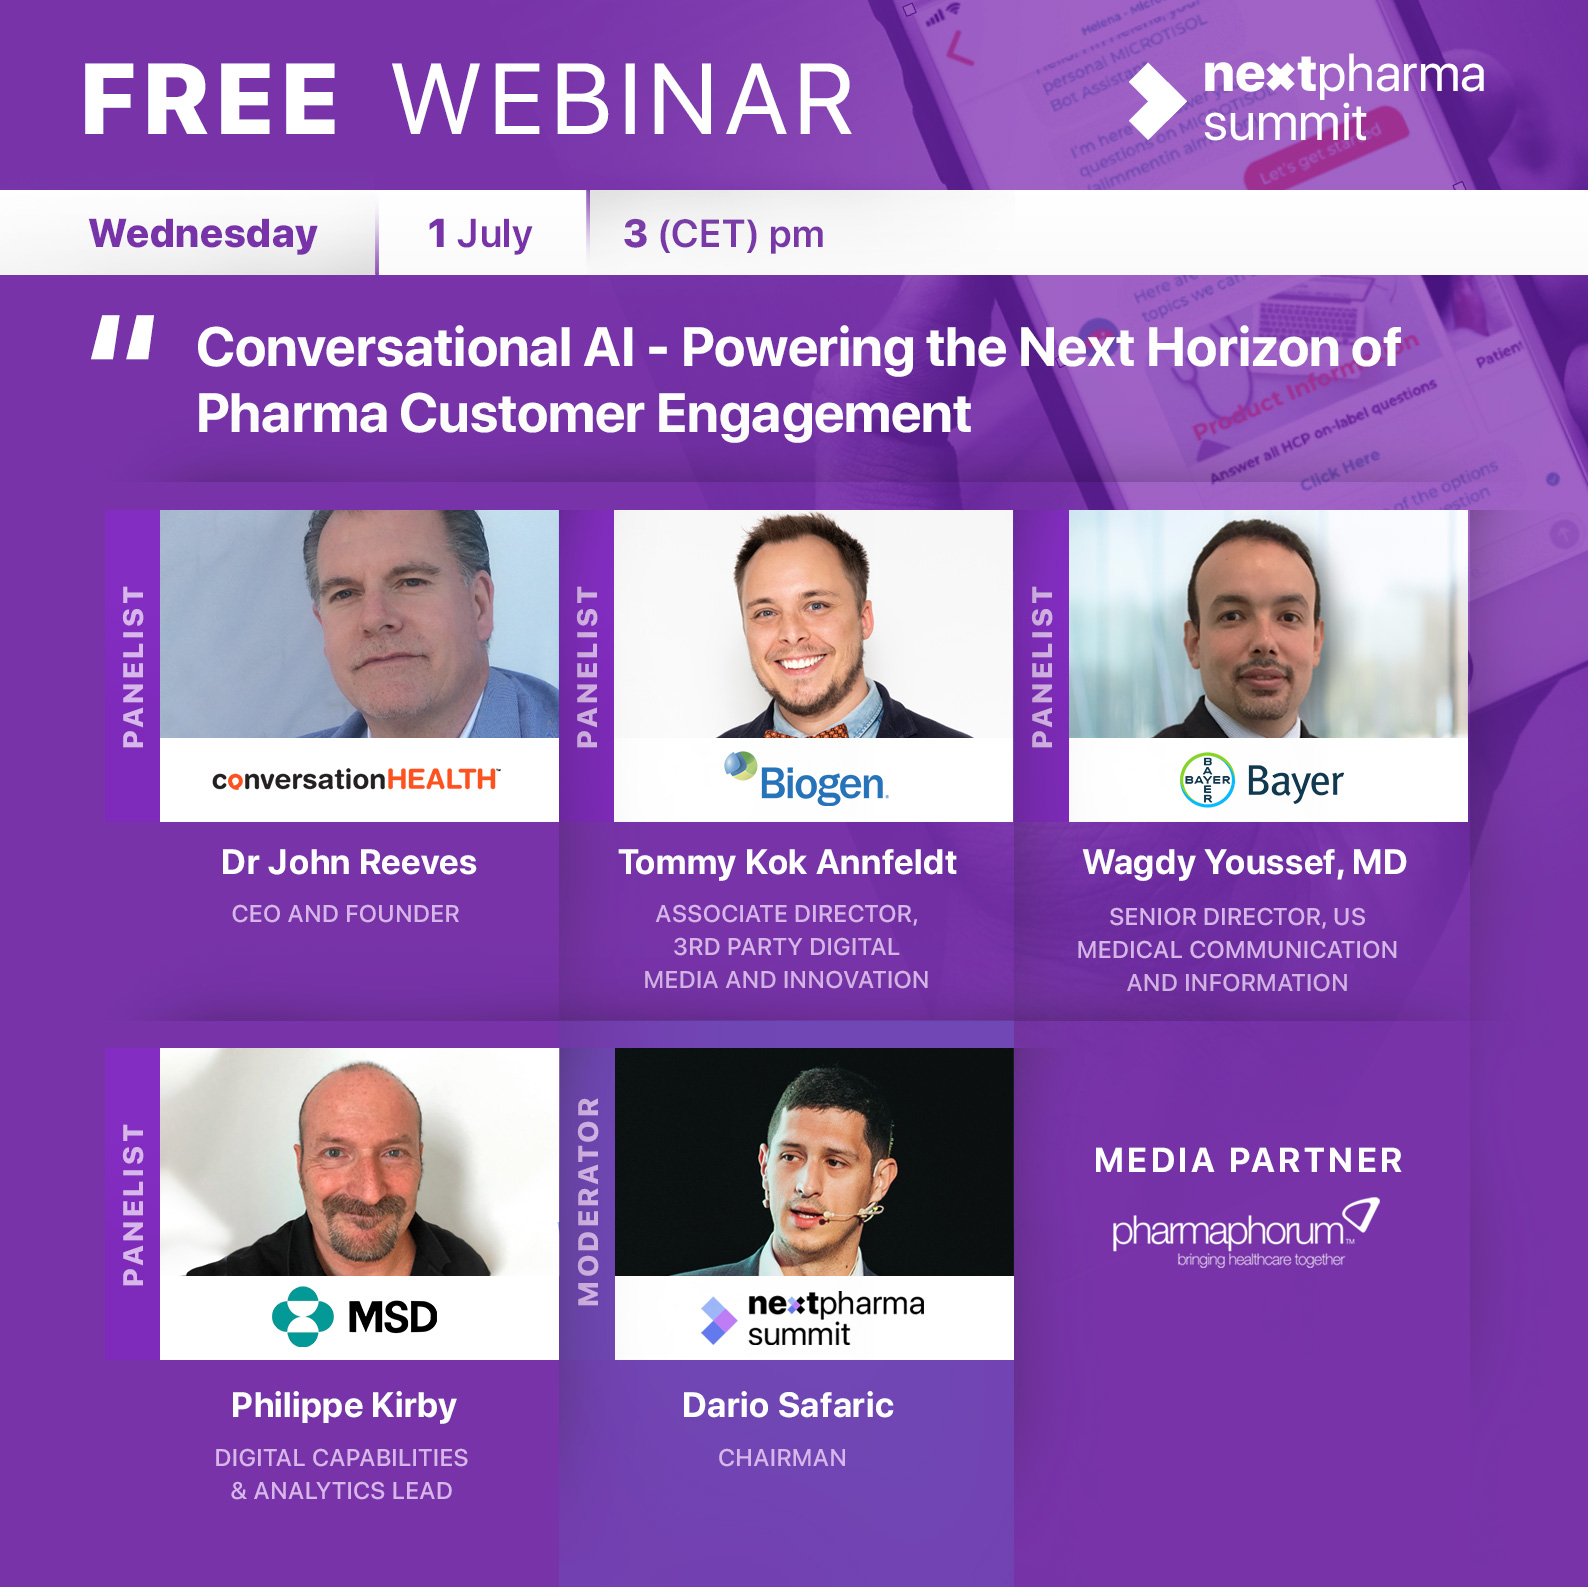 Next Pharma Summit webinar